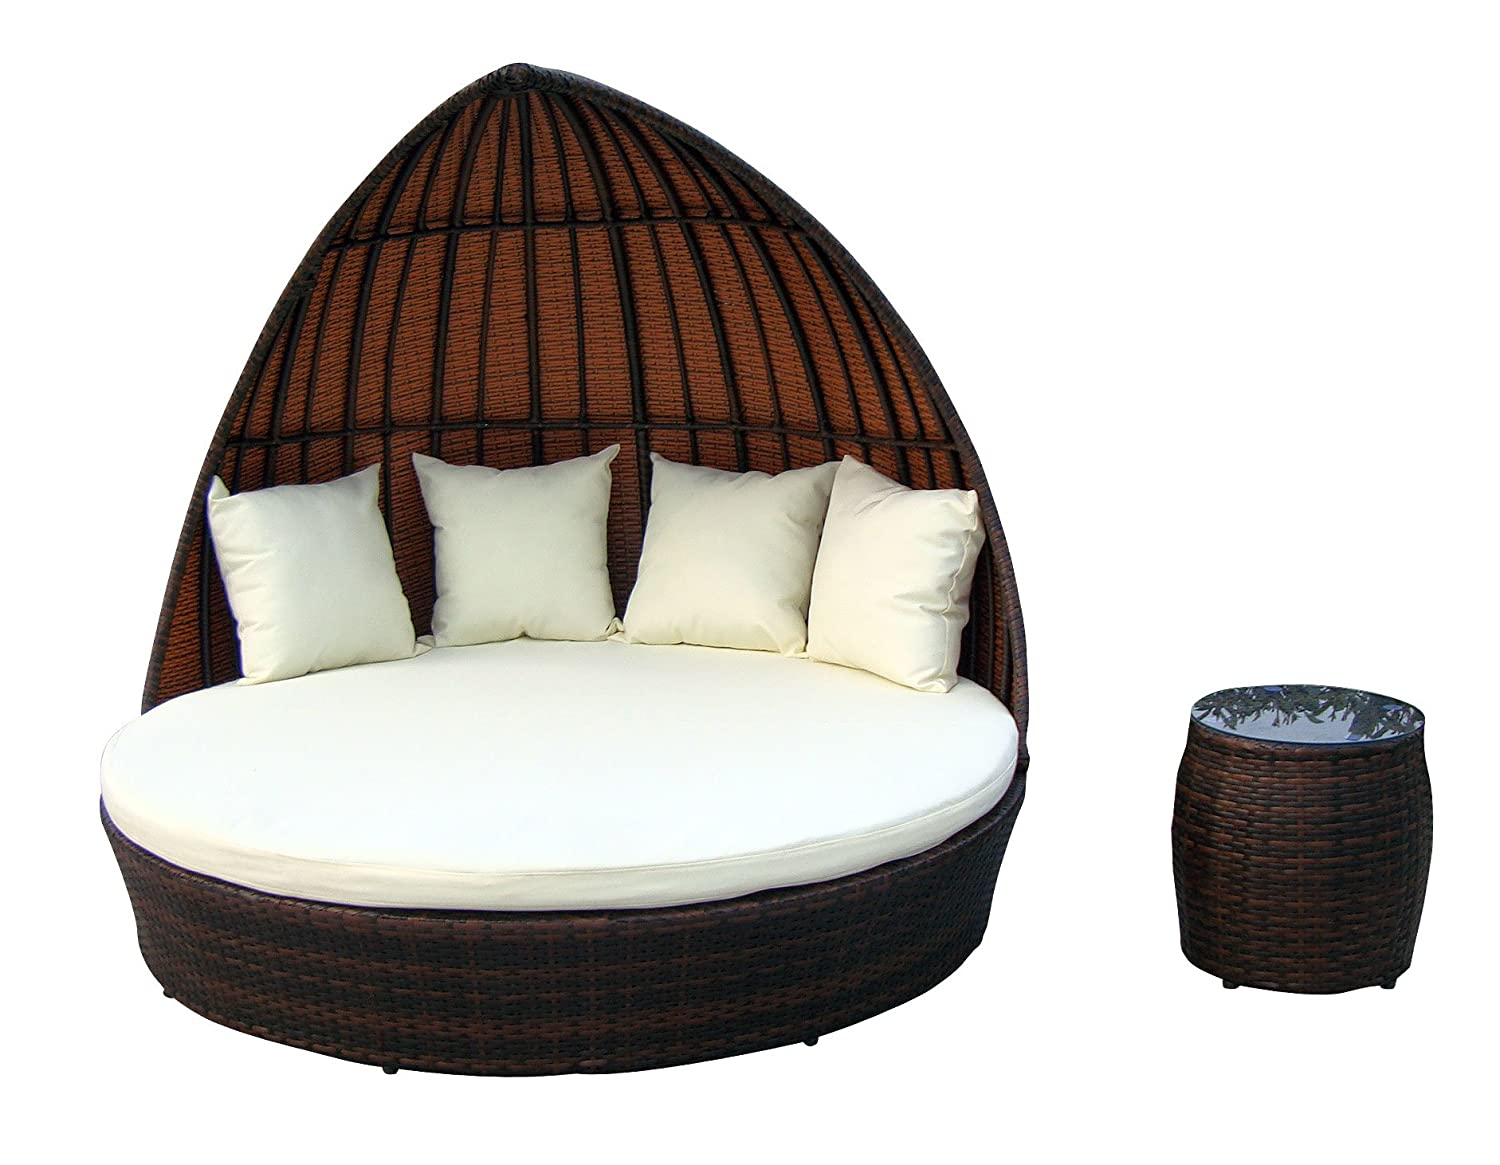 baidani rattan lounge doppelliege fantasy braun meliert g nstig online kaufen. Black Bedroom Furniture Sets. Home Design Ideas